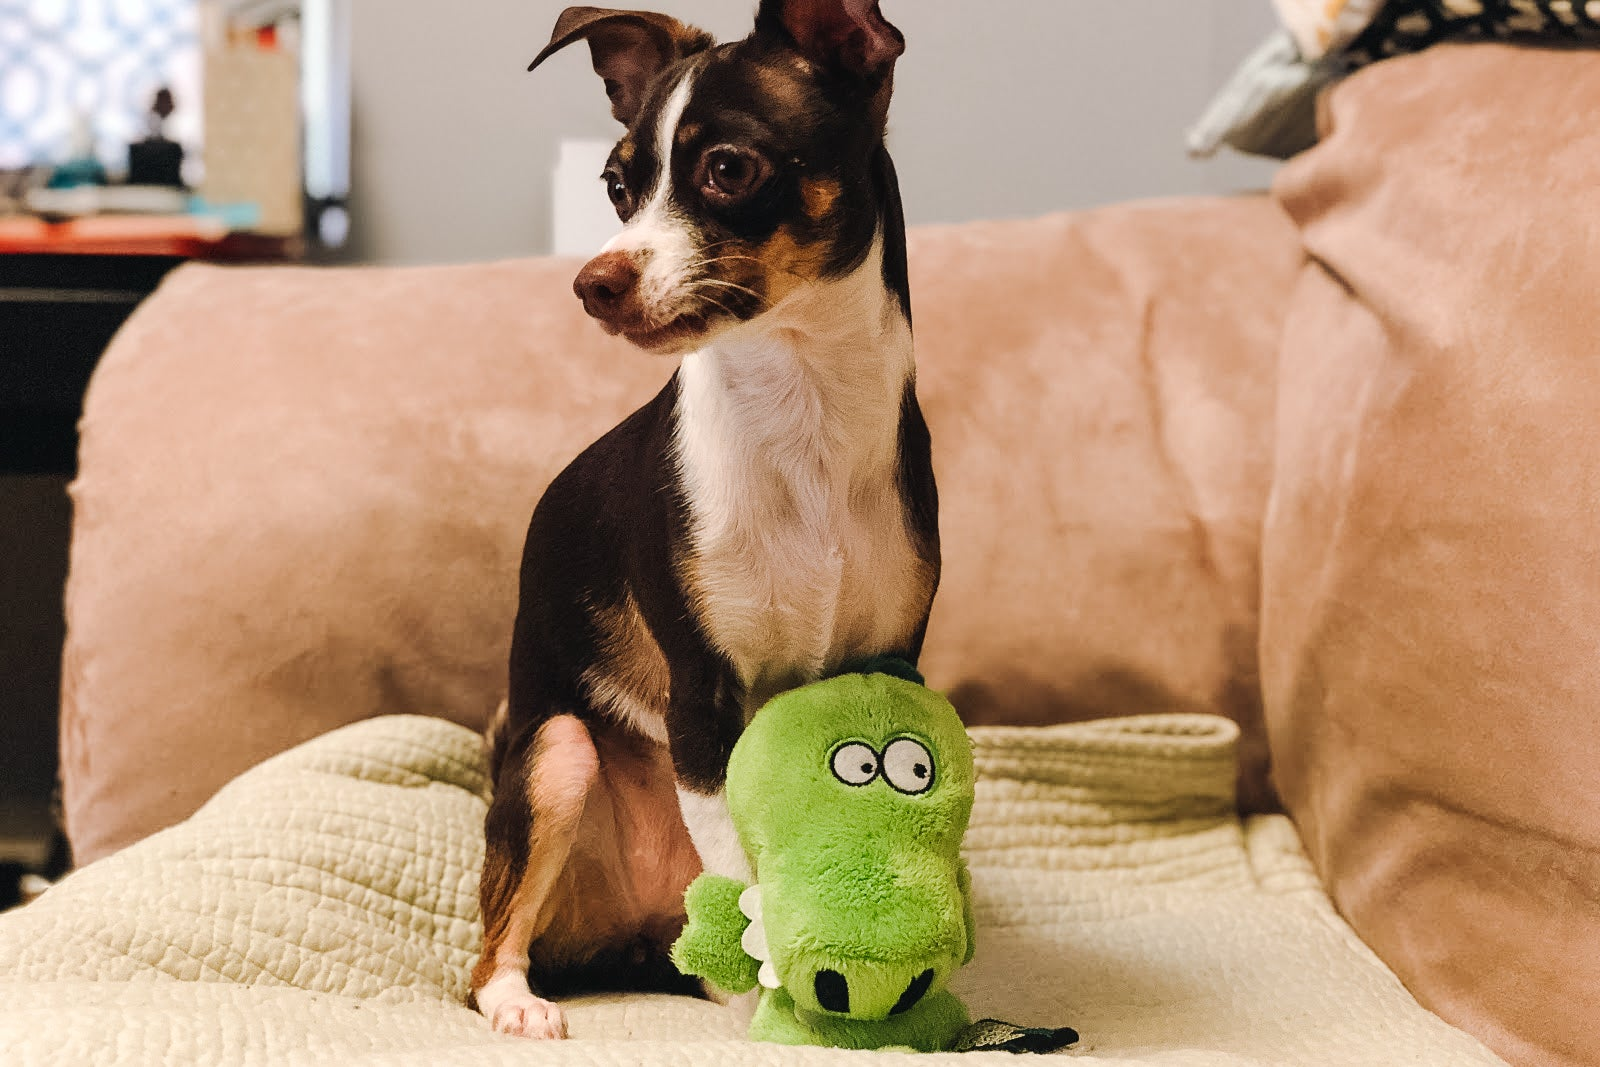 small dog with Hear Doggy ultrasonic squeaker toys